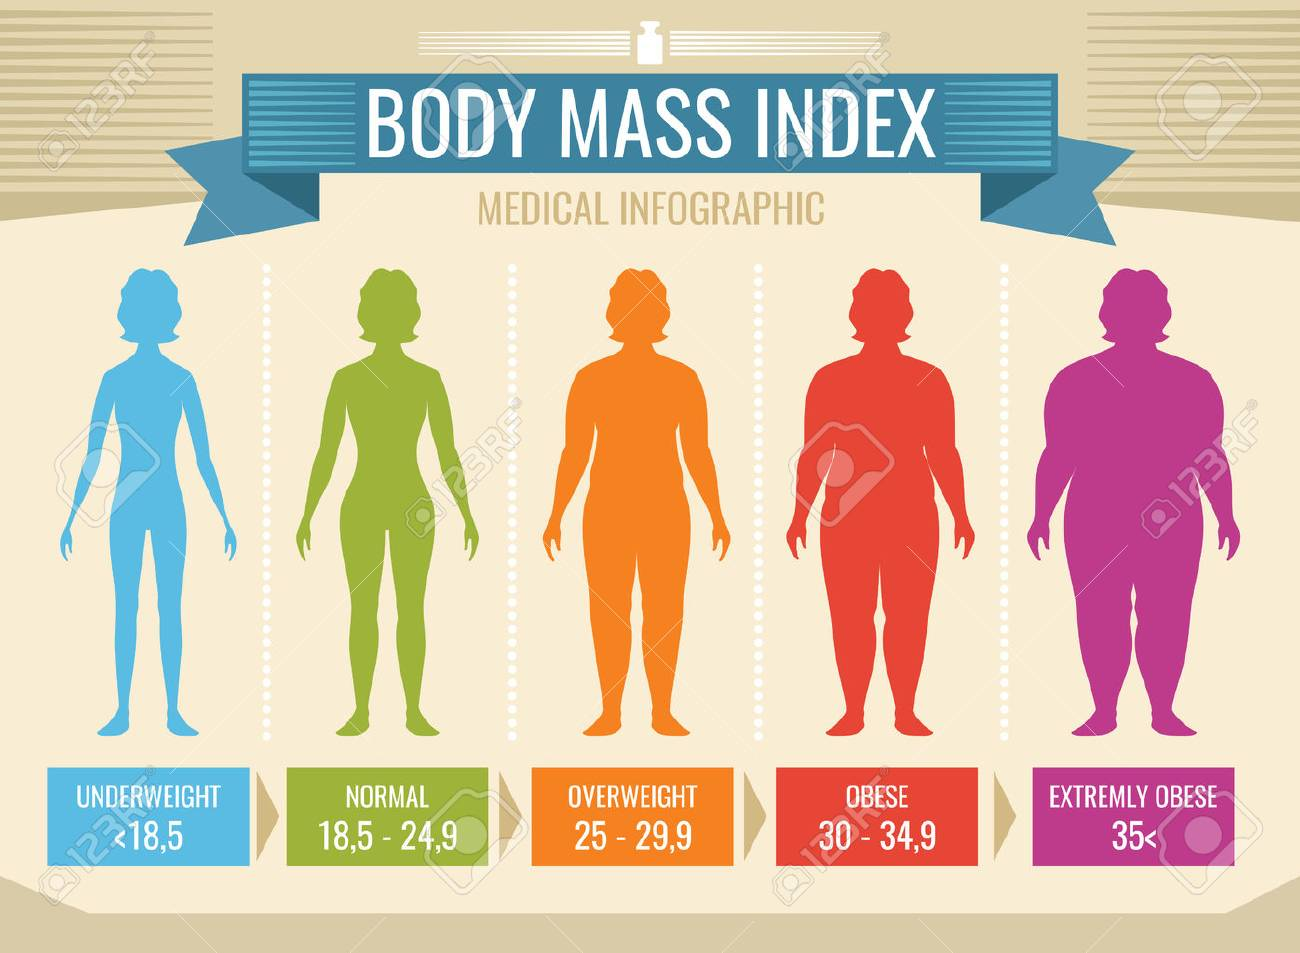 Woman body mass index vector medical infographic - 89689280